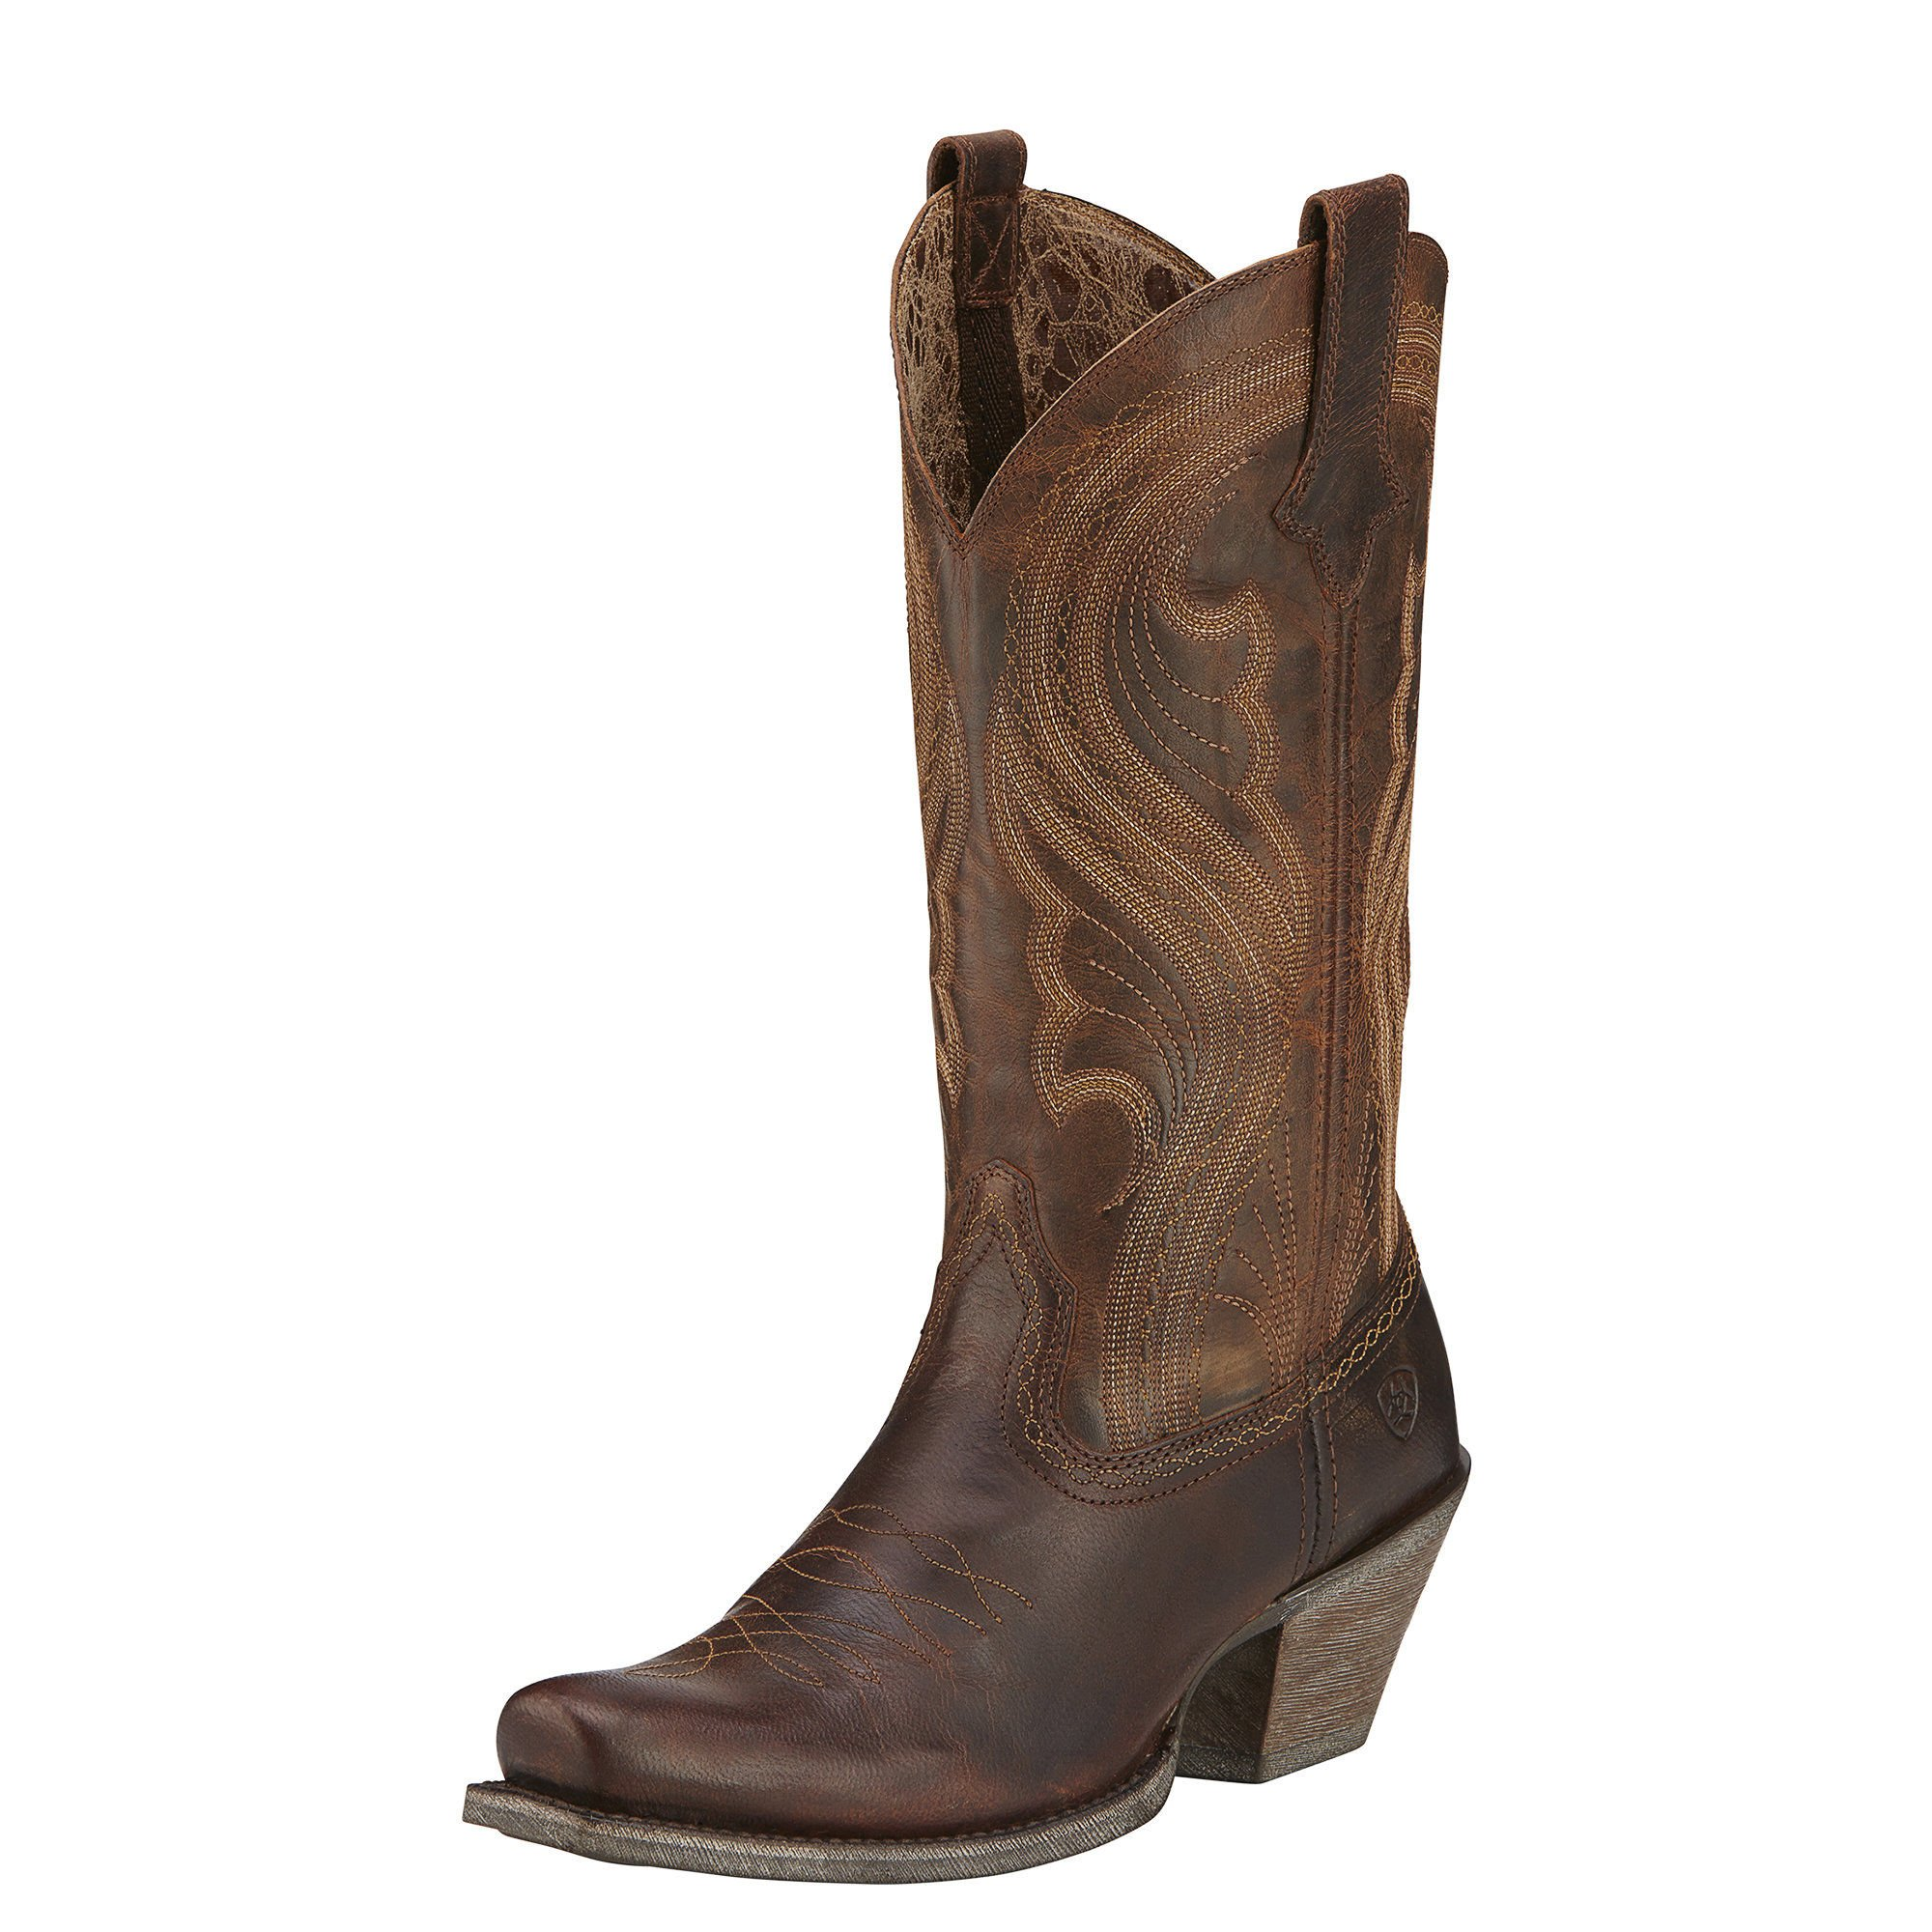 Ariat Women's Lively Western Cowboy Boot, Sassy Brown, 6 B US by Ariat (Image #1)